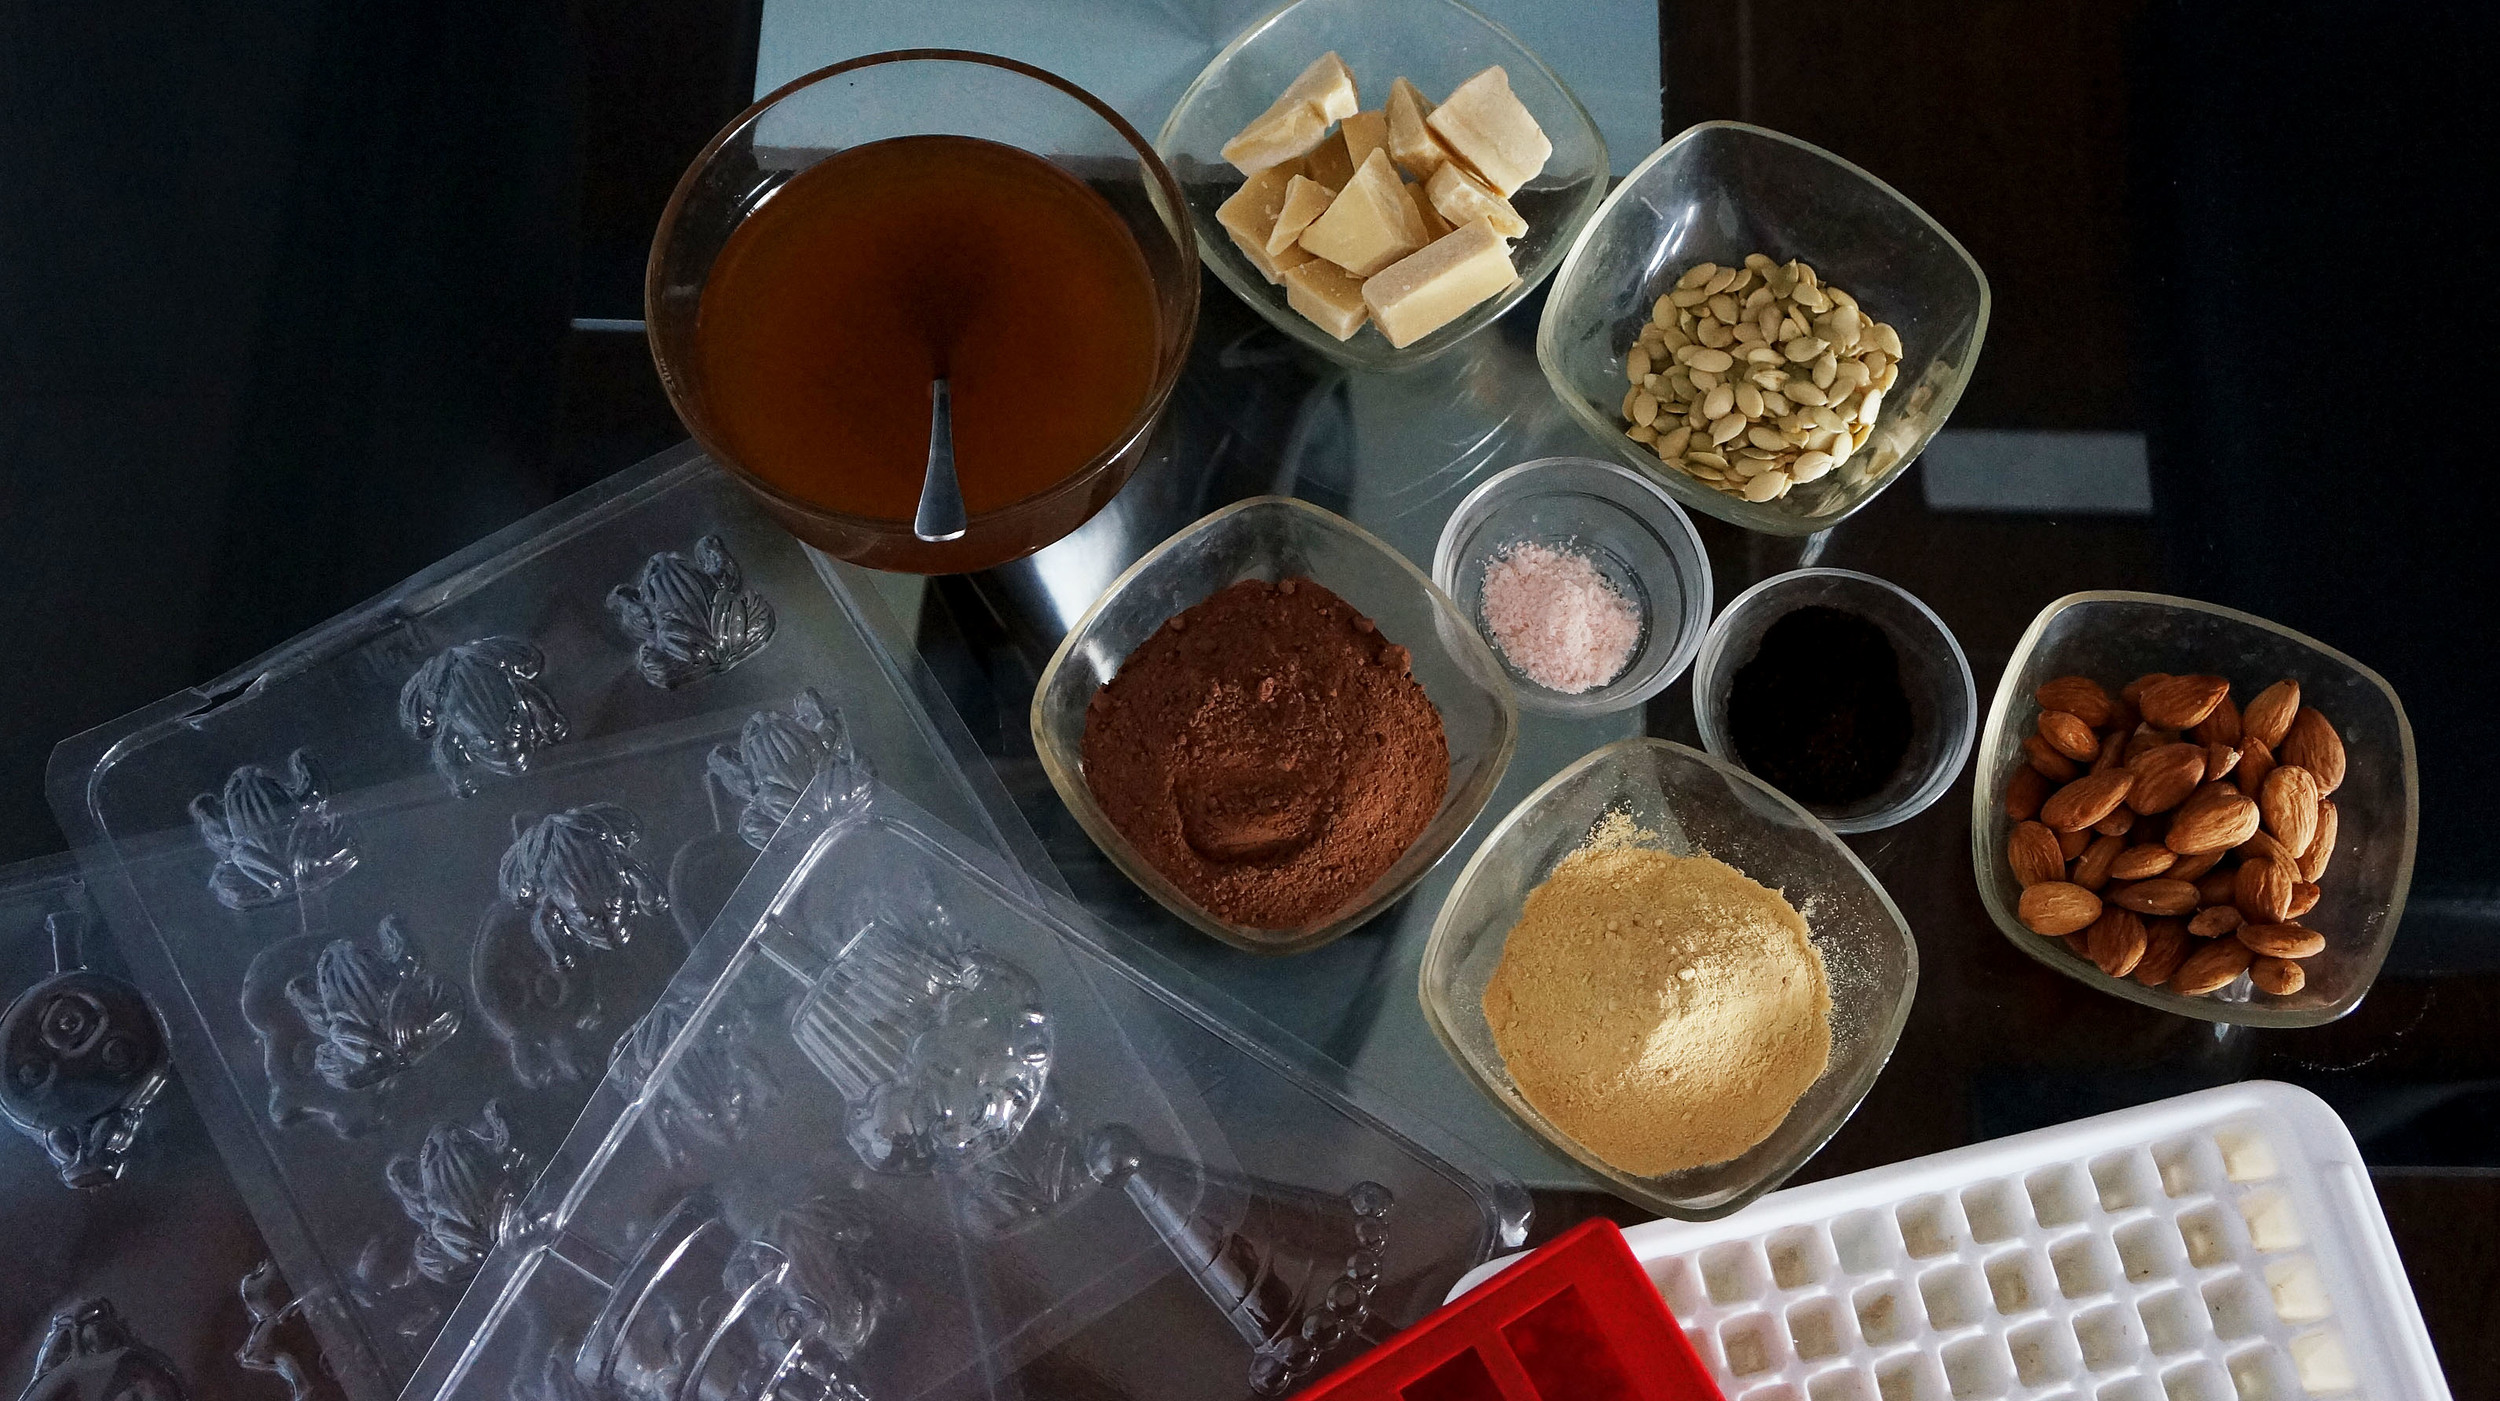 Use simple ingredients to get started: Cacao Butter, Cacao Powder, Sweetner, Salt, Nuts